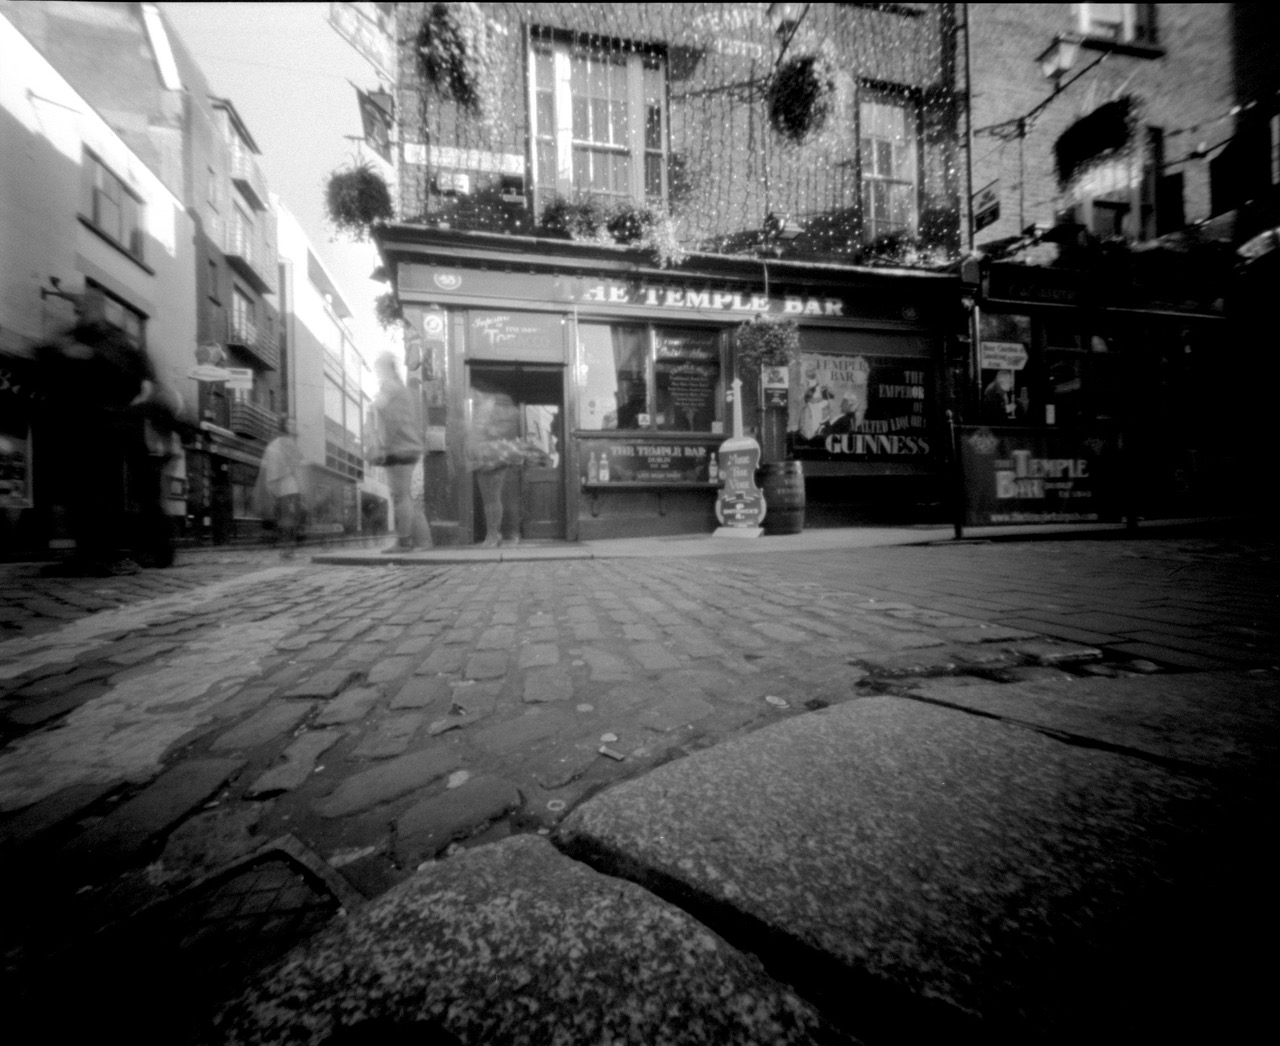 The Temple Bar, Zero Image 4×5, Tri-X, 20 second exposure, ©Brendan Comey